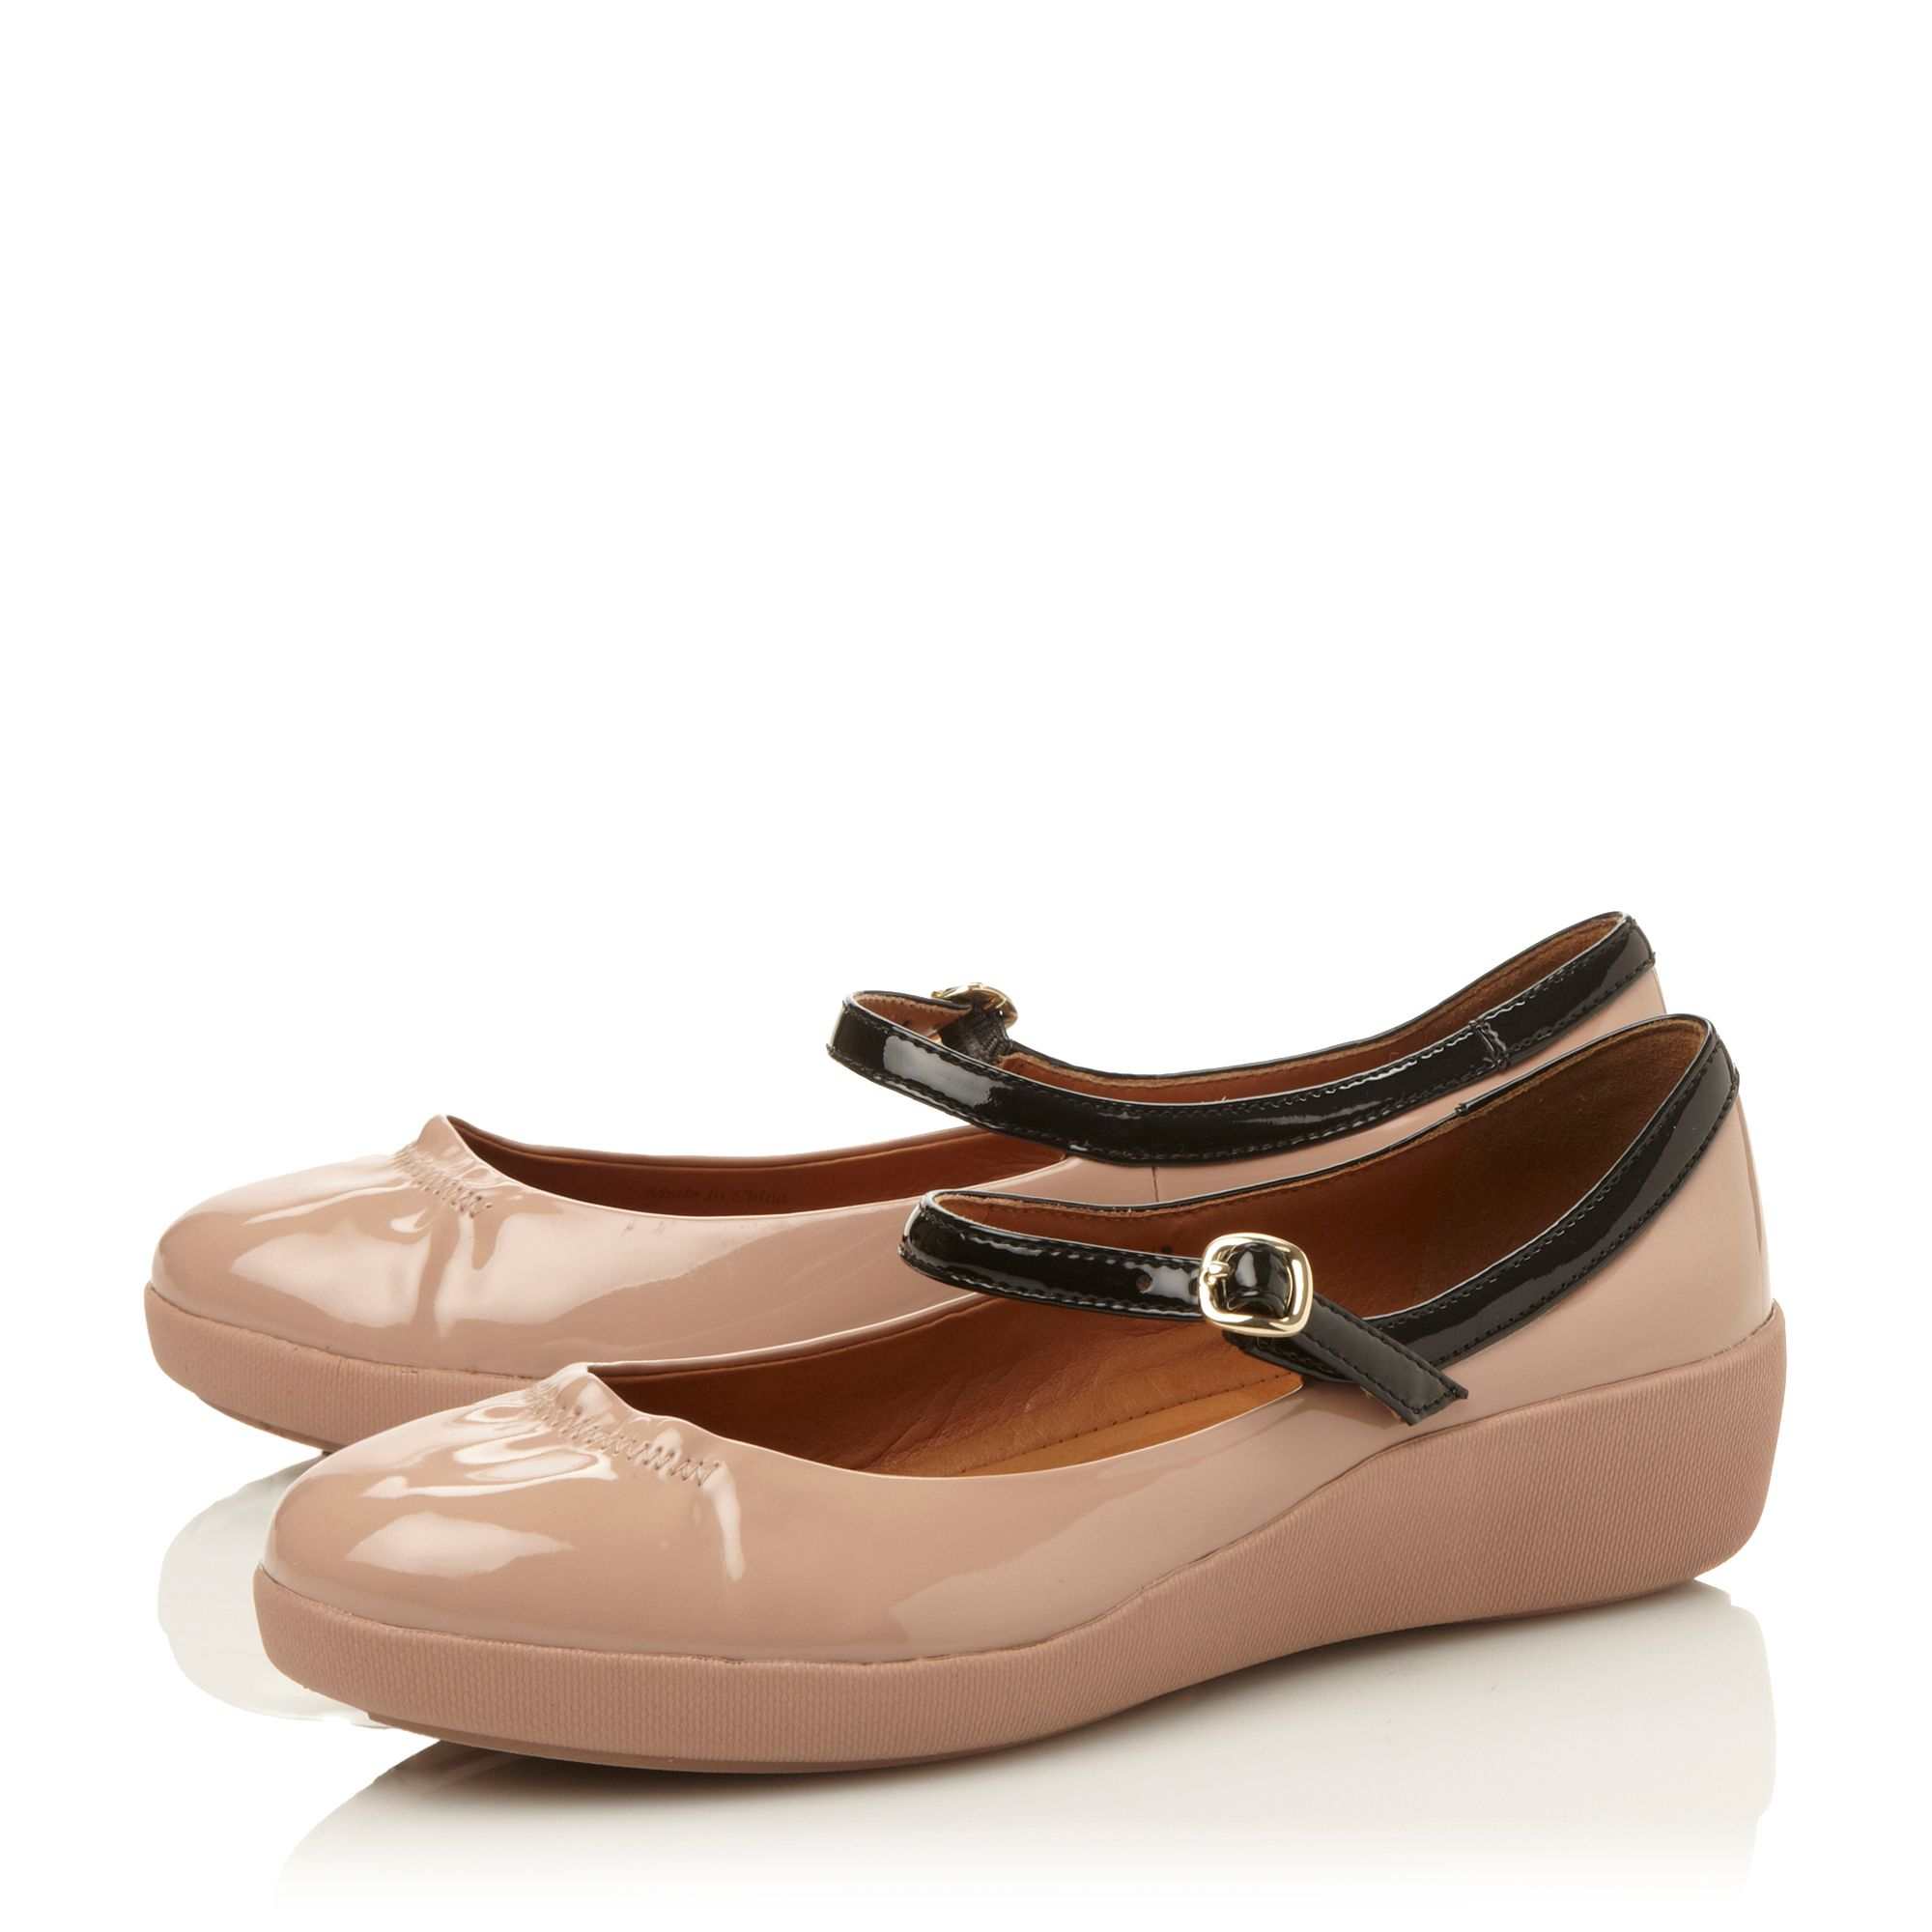 dcb81db773f1 Fitflop F Pop Mary Jane Ballerina Shoes